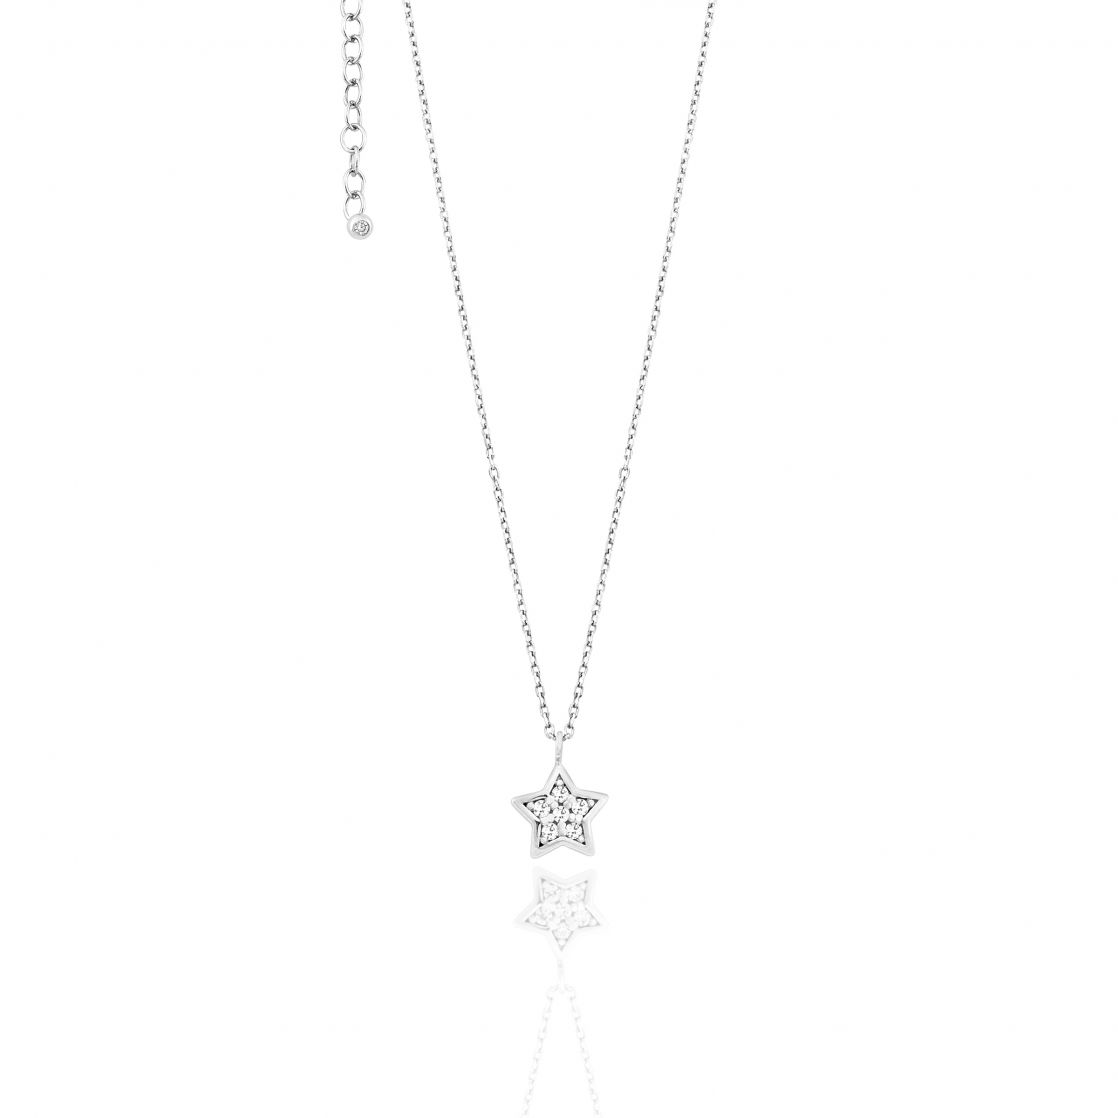 NECKLACE WITH STAR PAVÈ